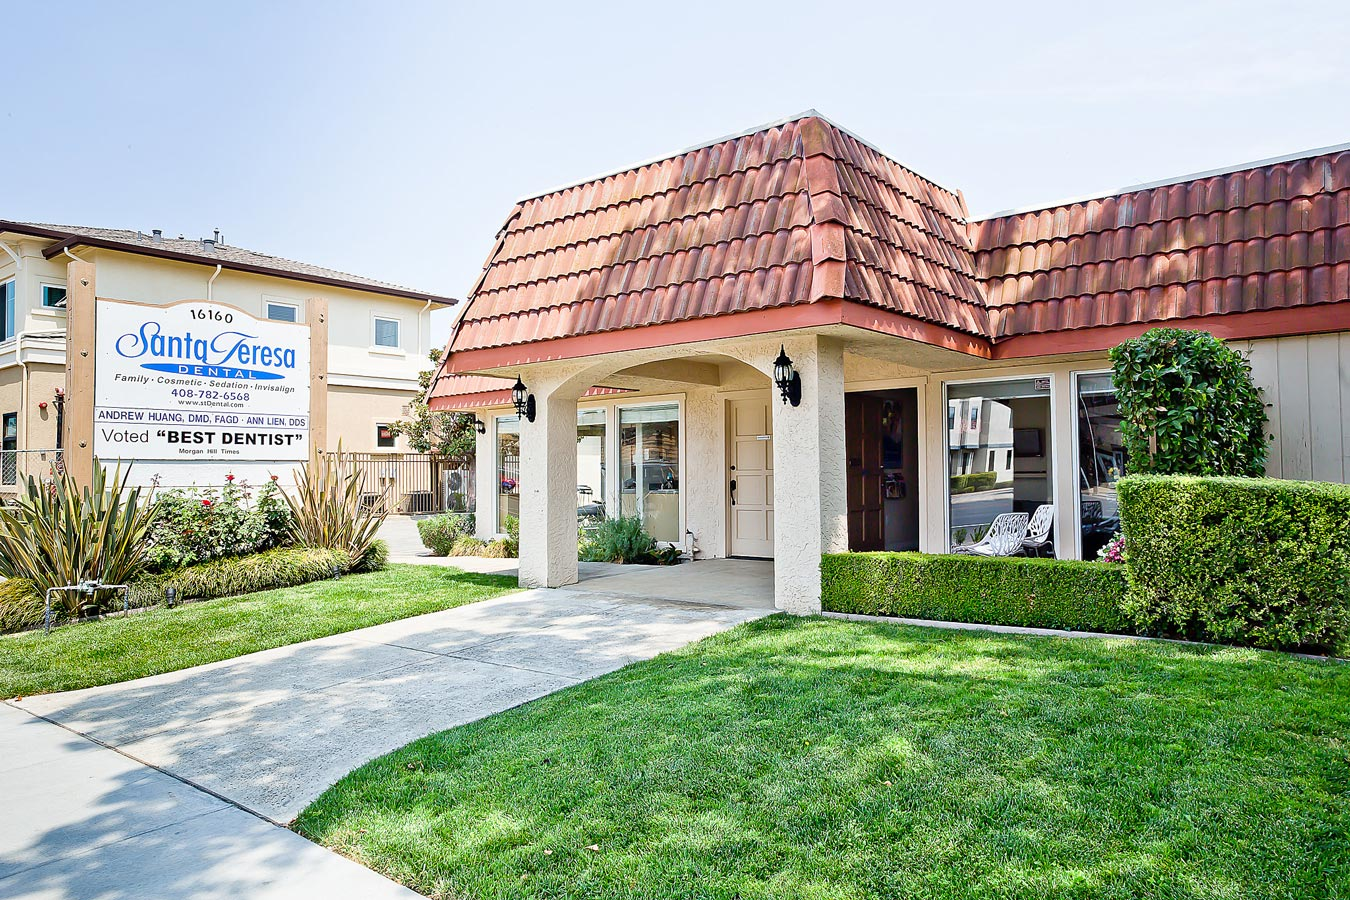 Santa Teresa Dental Morgan Hill